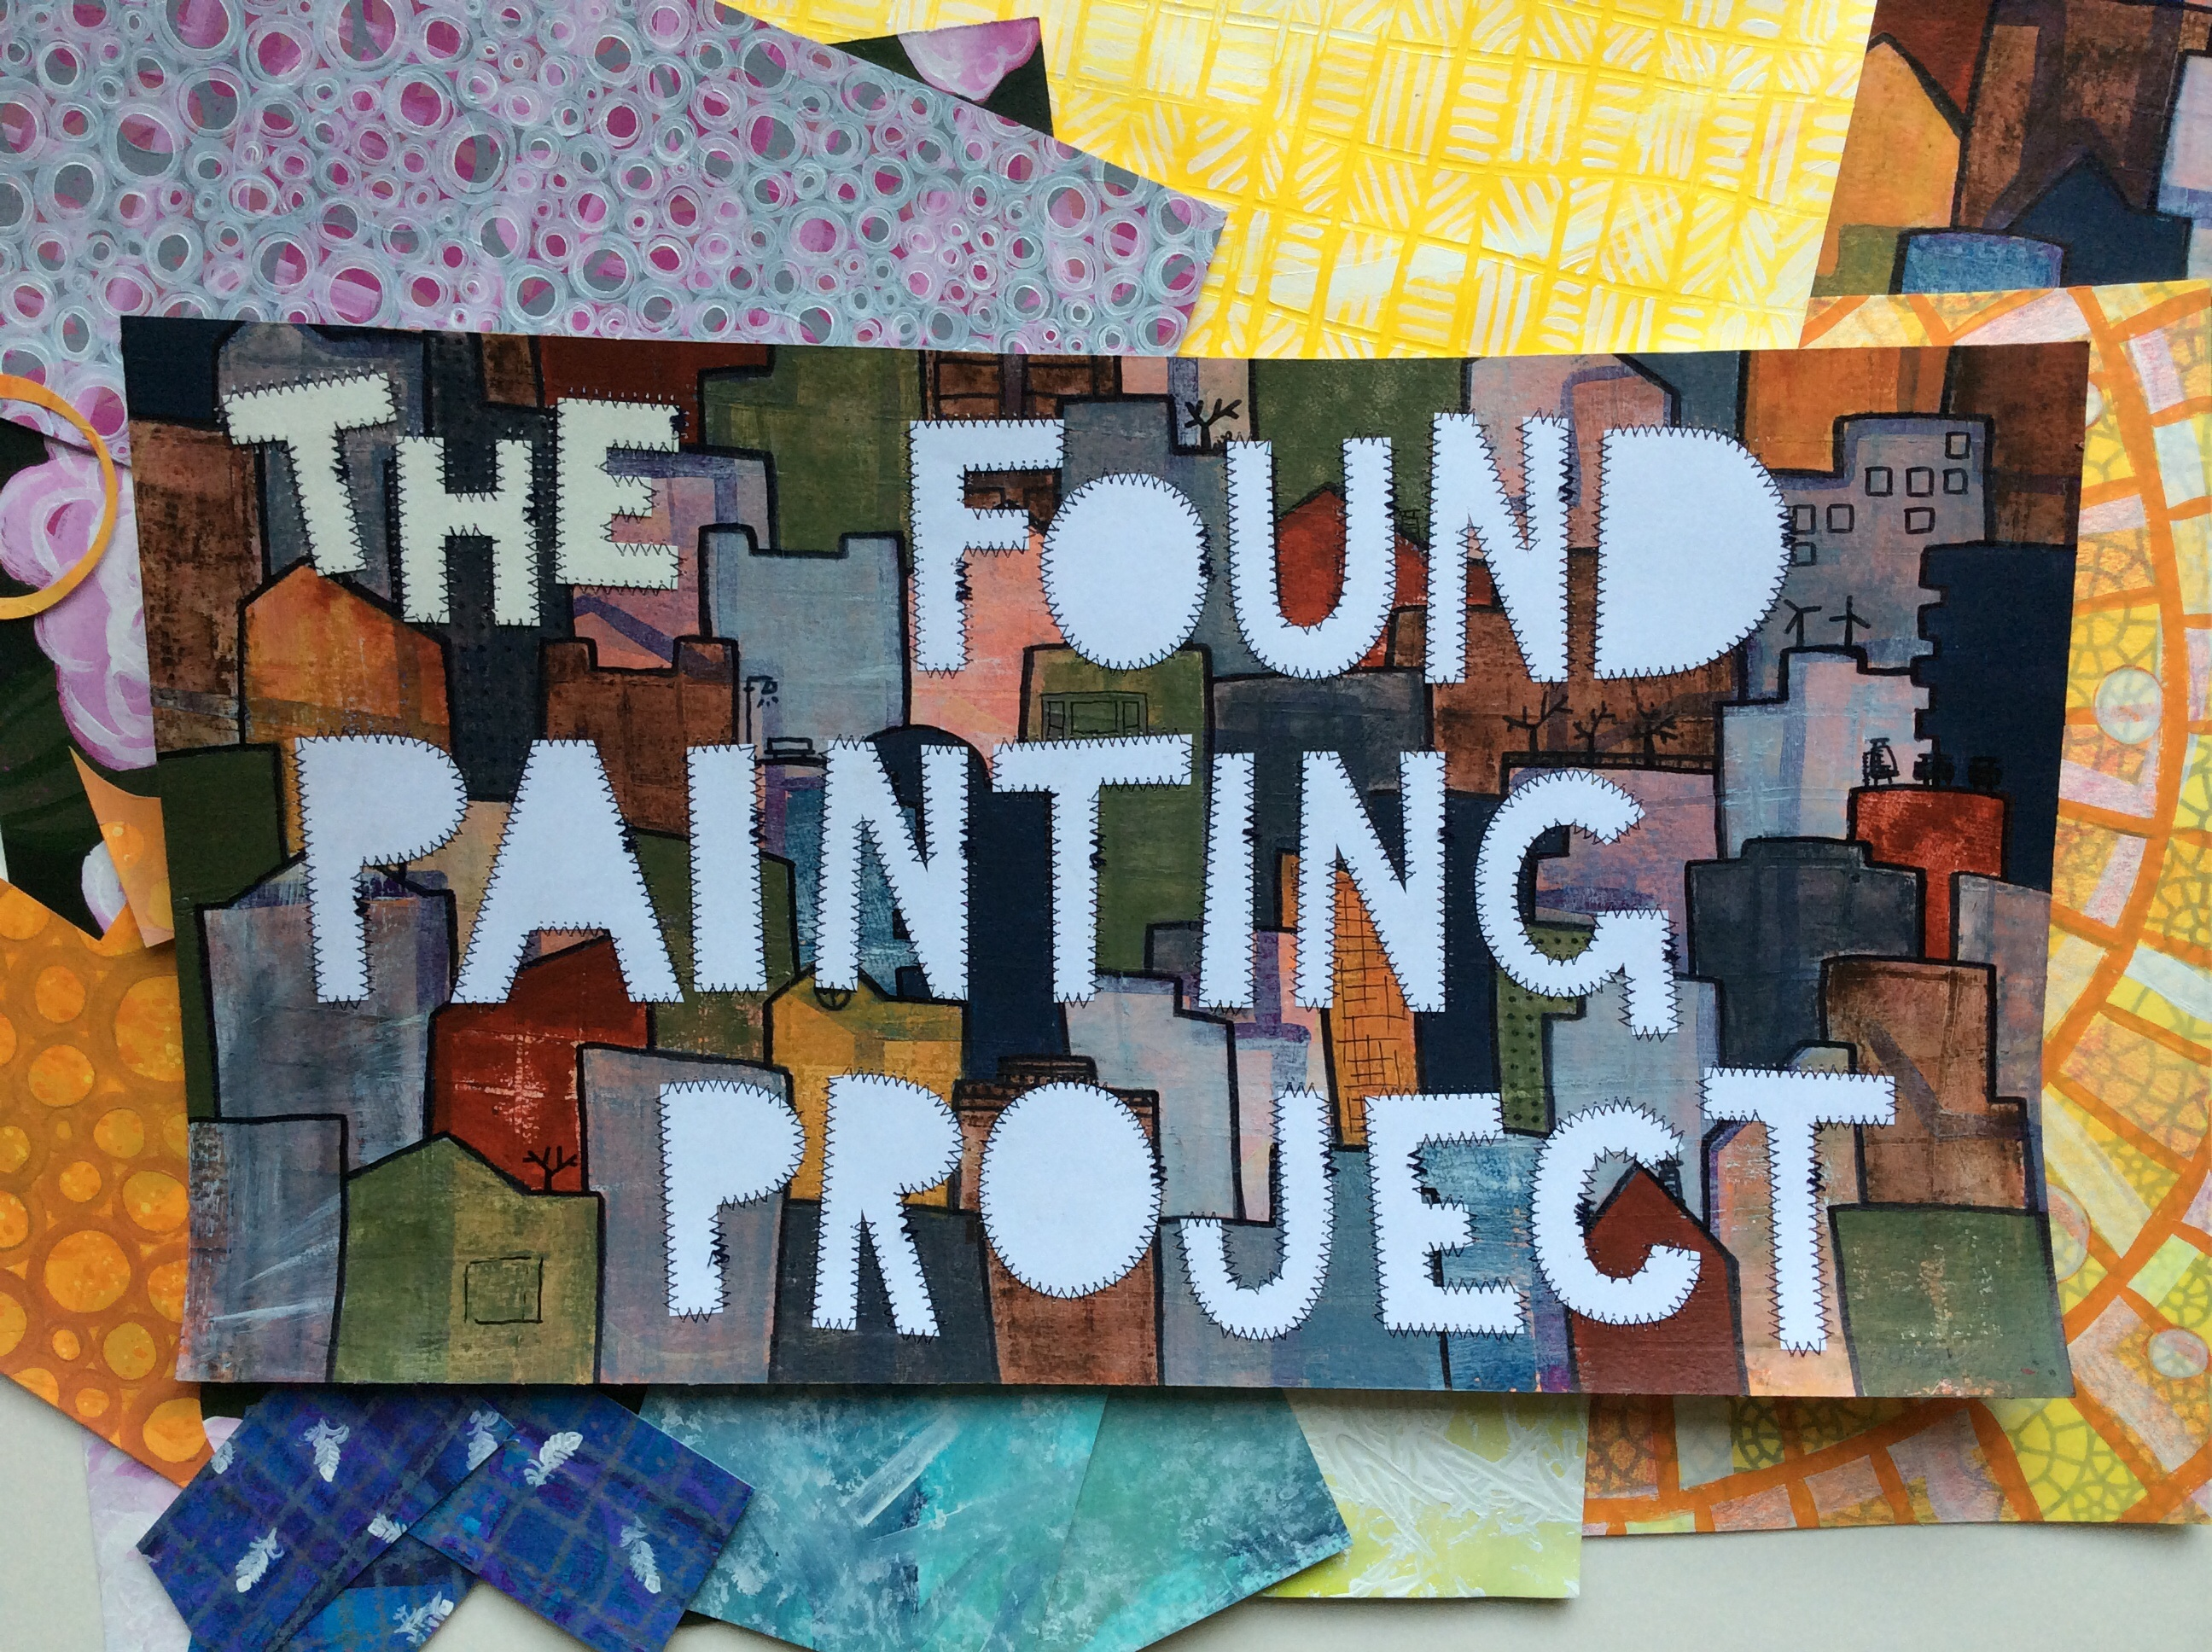 The Found Painting Project